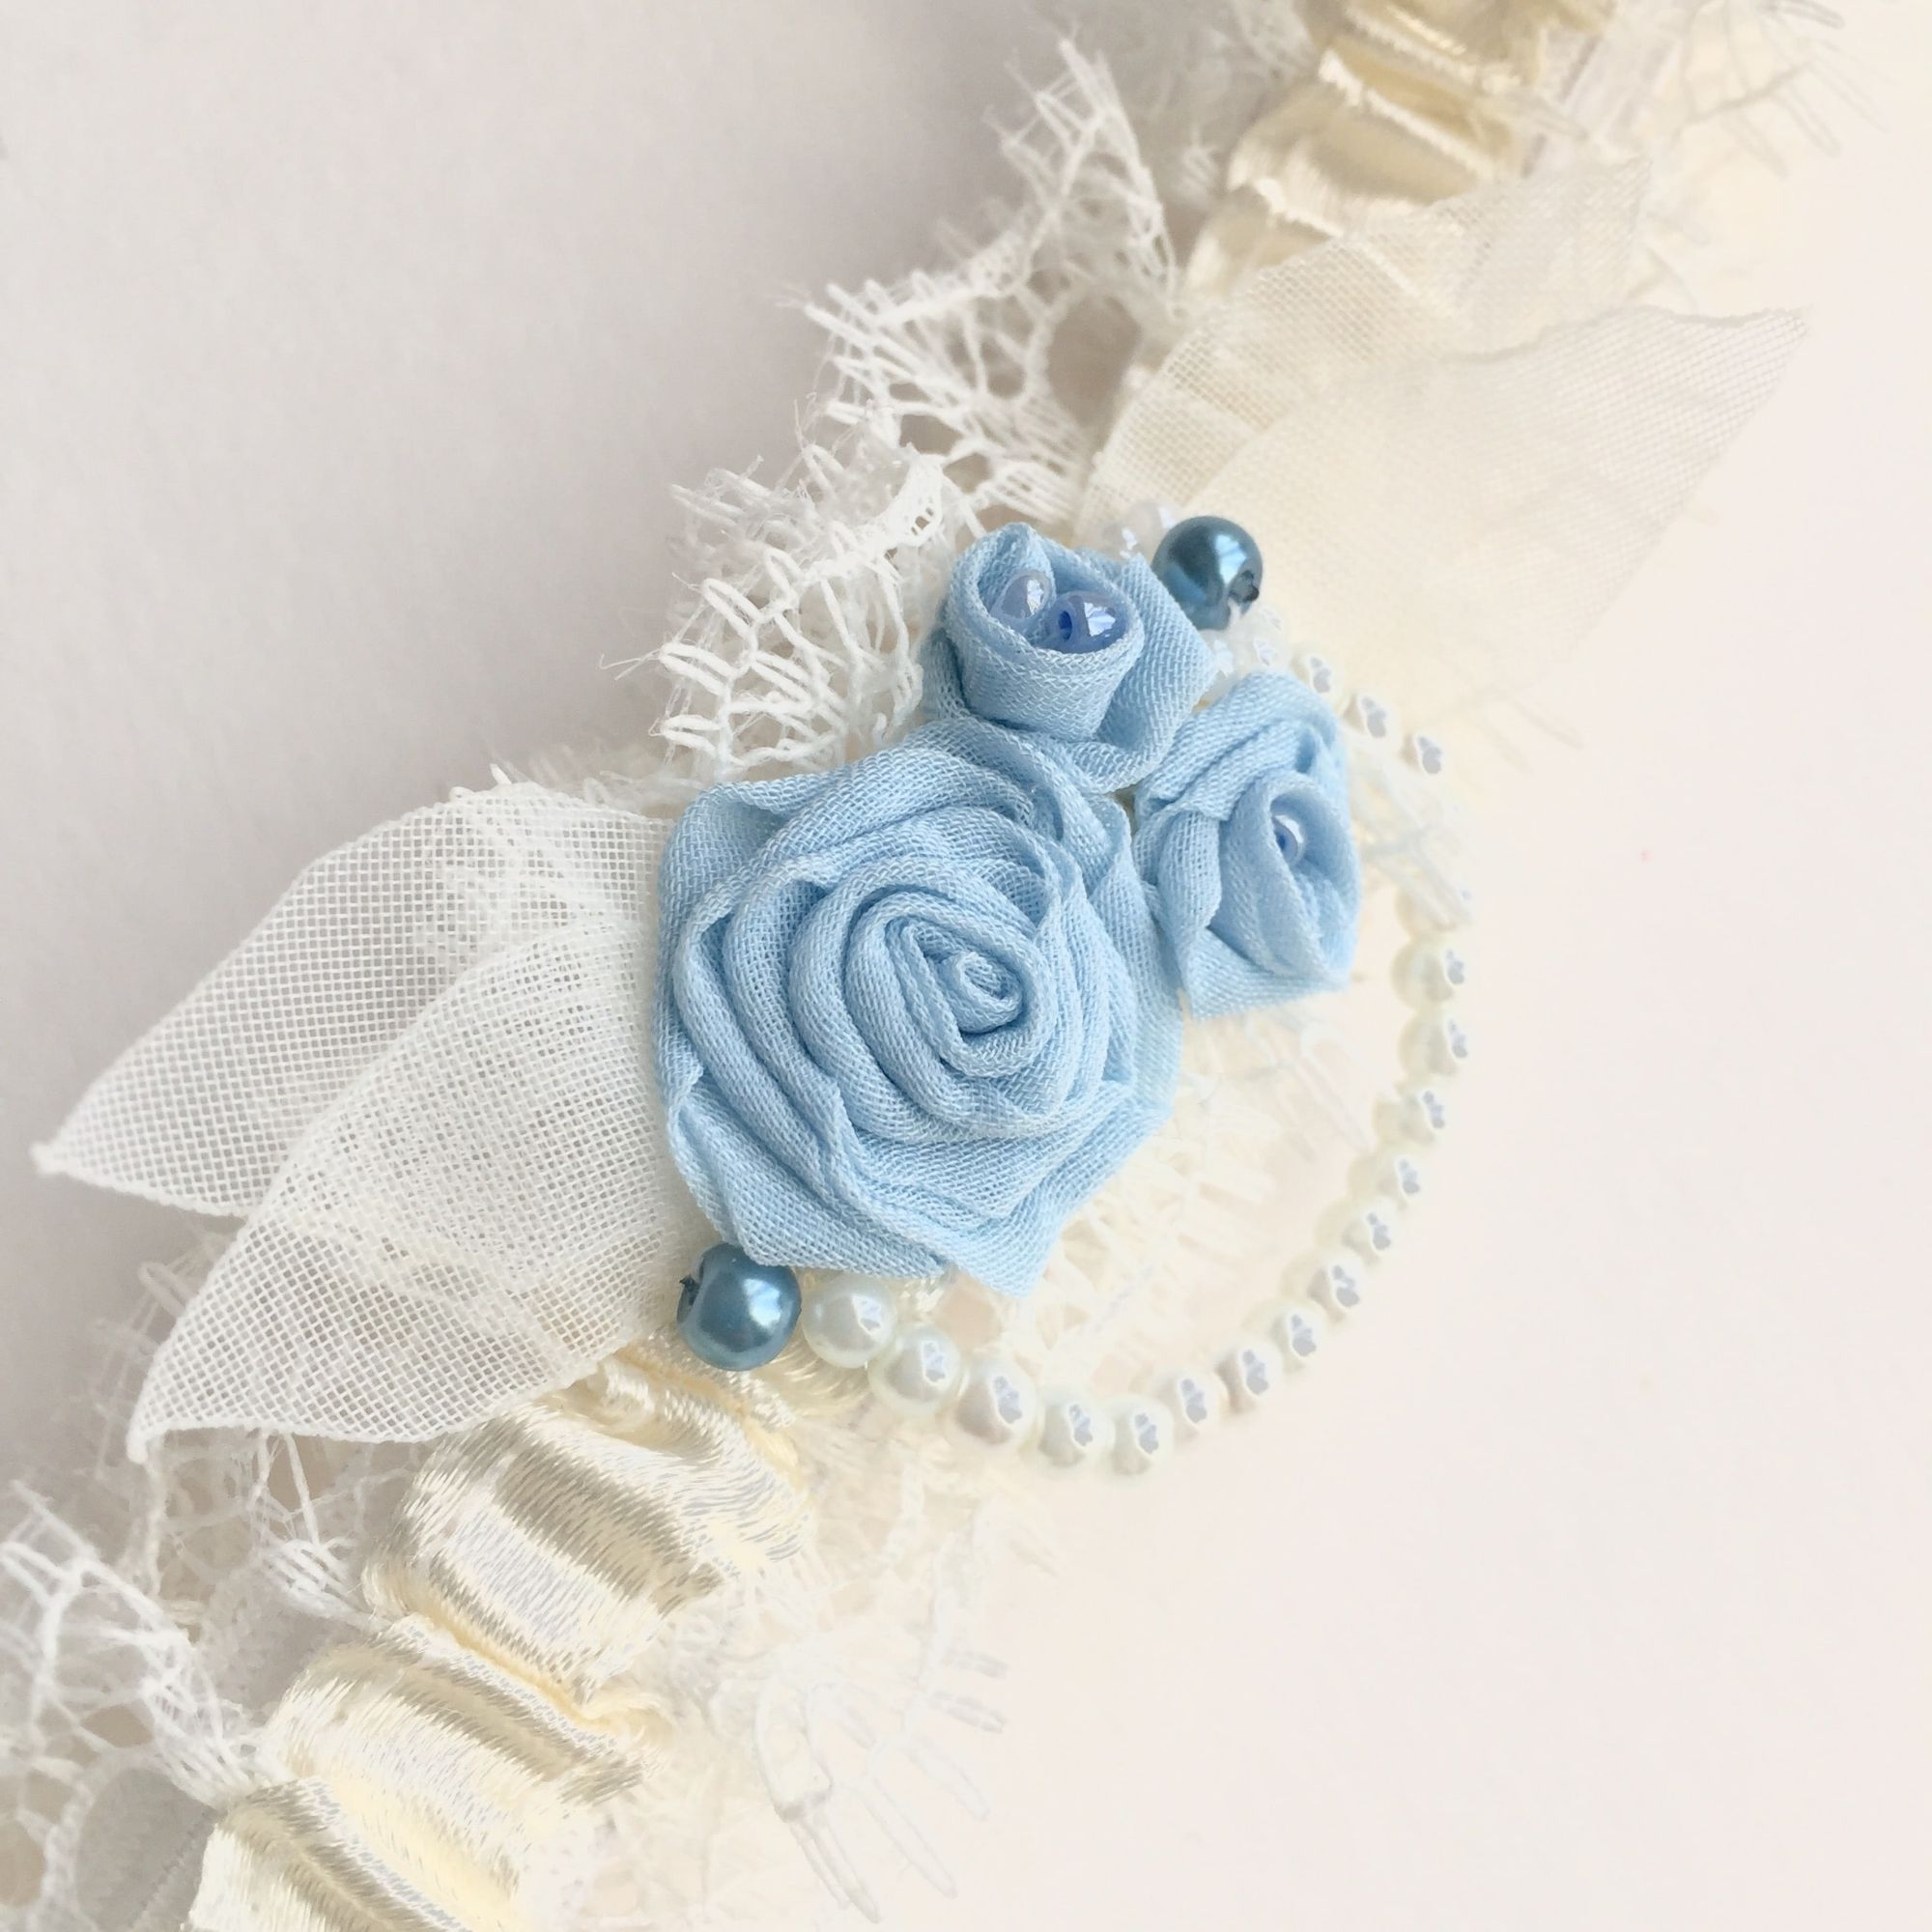 something blue wedding garter, with sky blue roses, vintage style, vintage wedding style garter